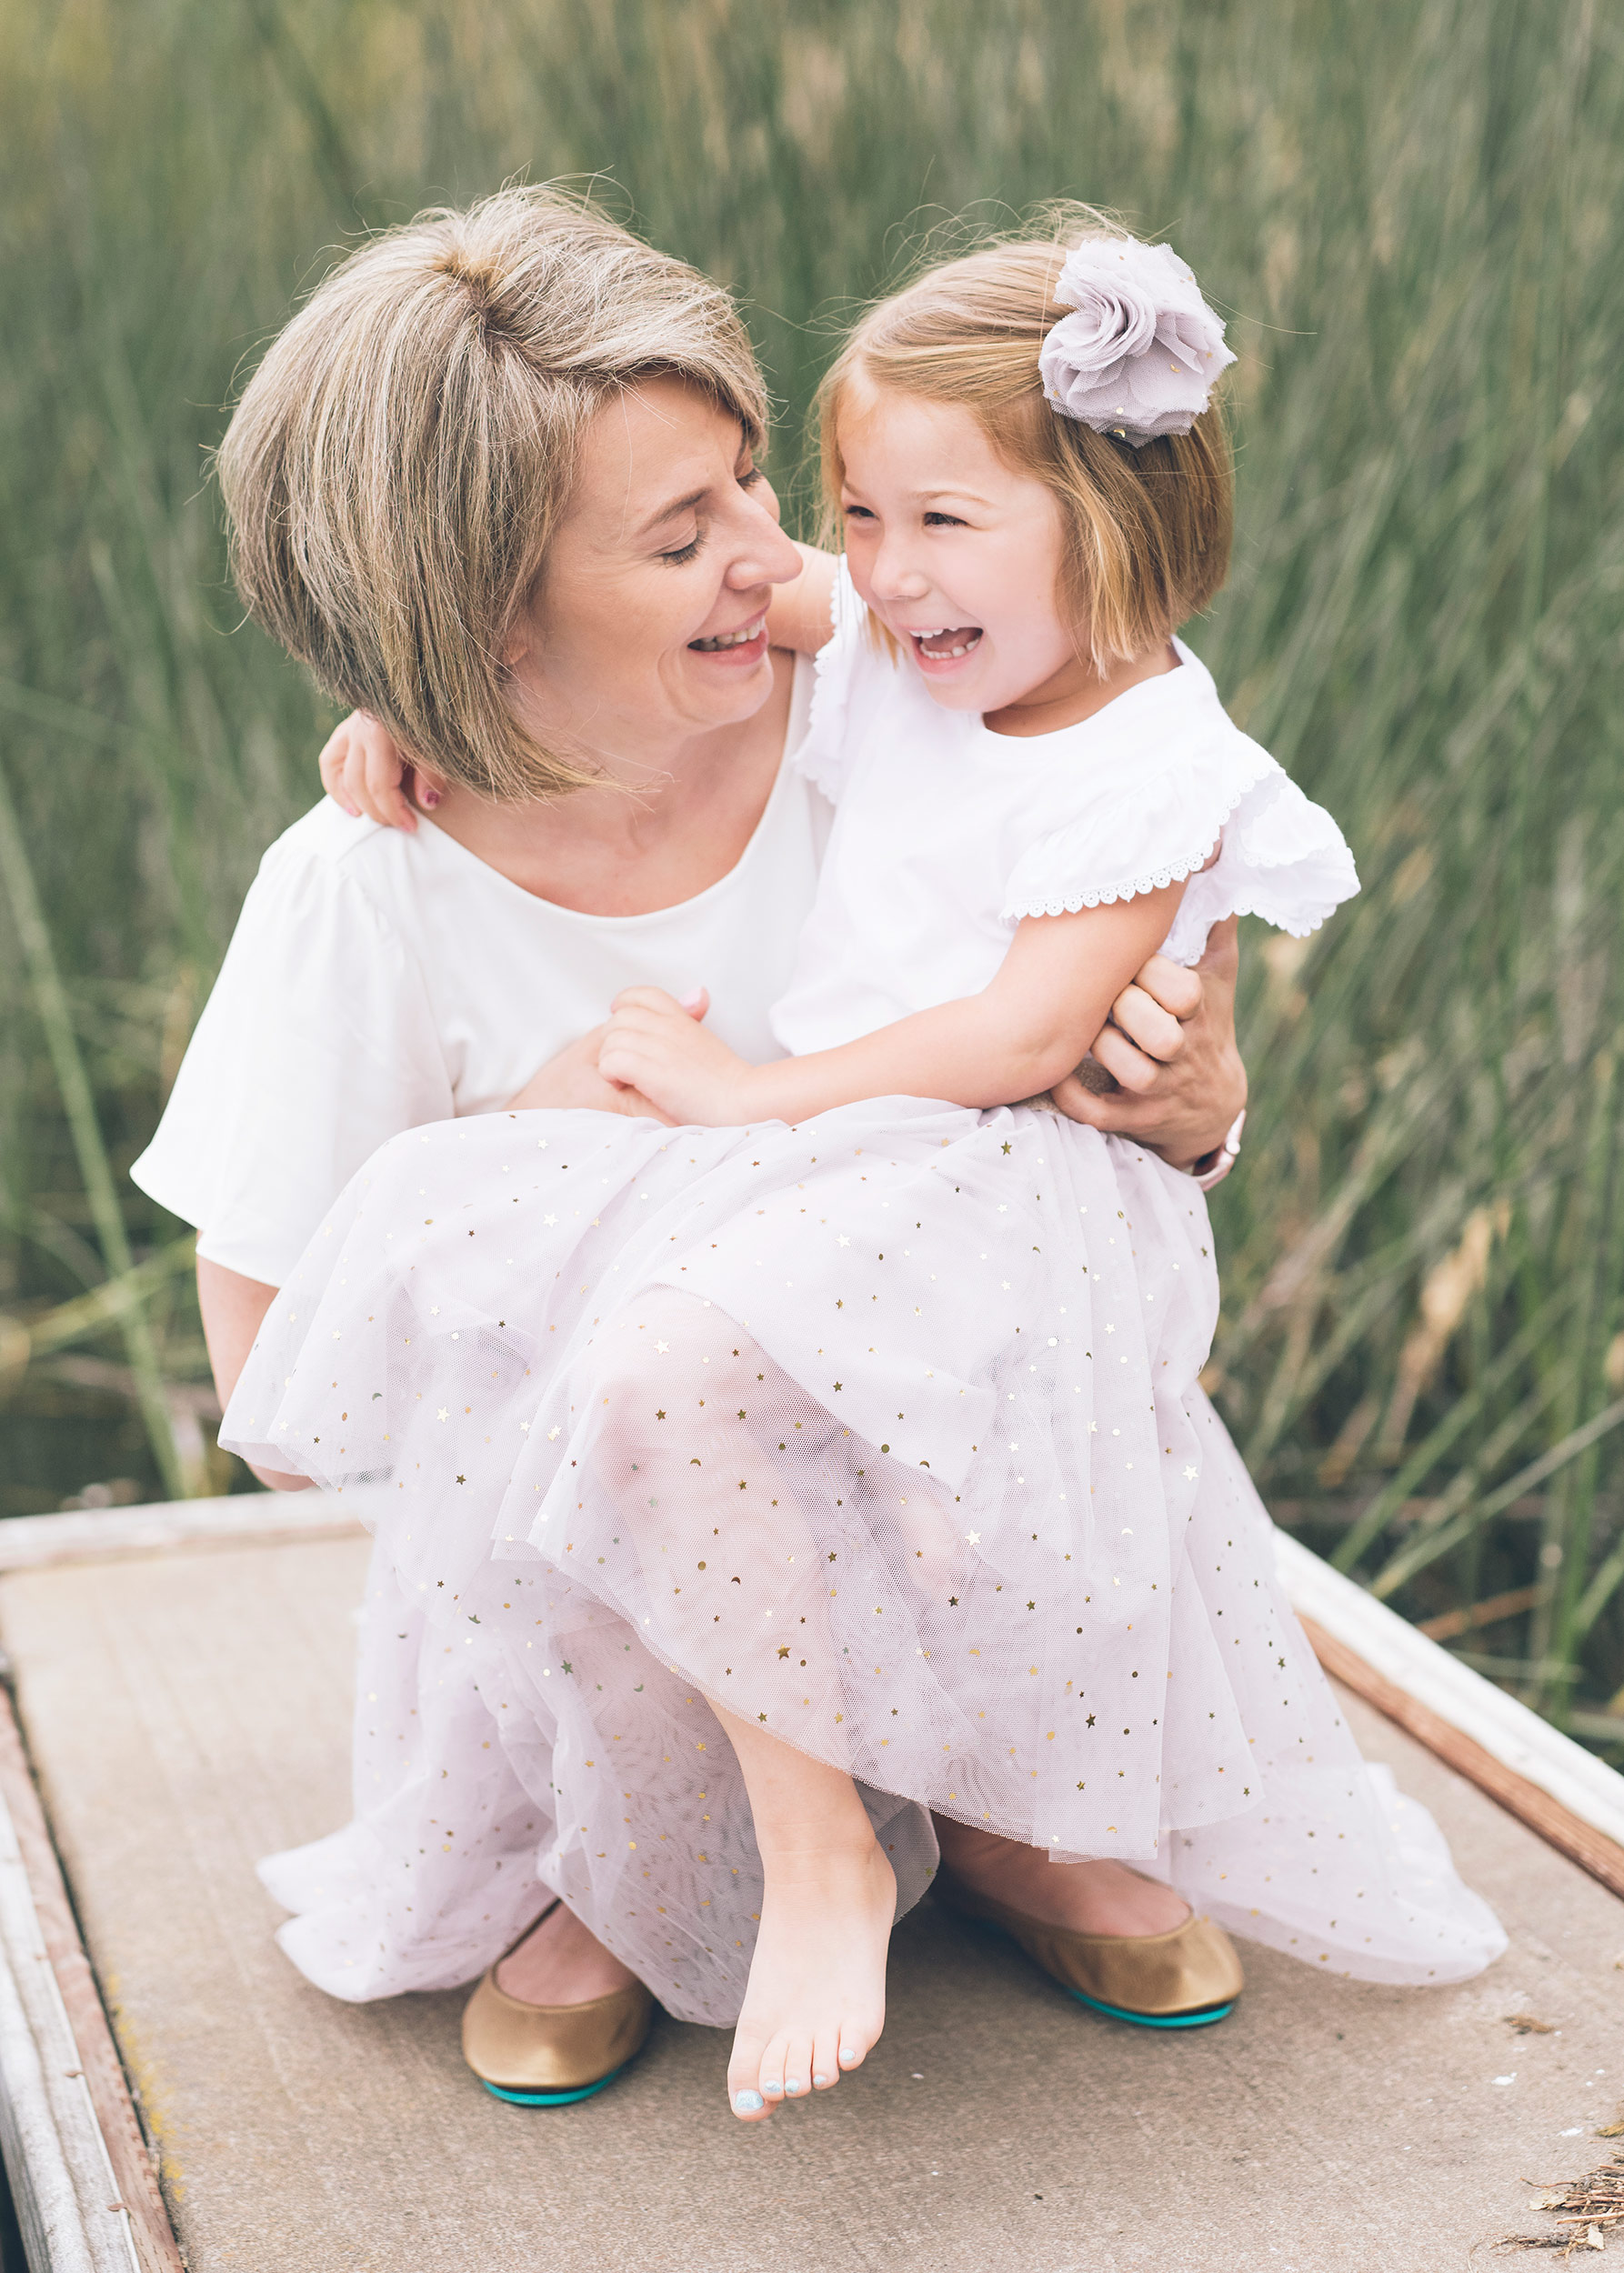 daughter-and-mother-laughing-during-lifestyle-portrait-session.jpg